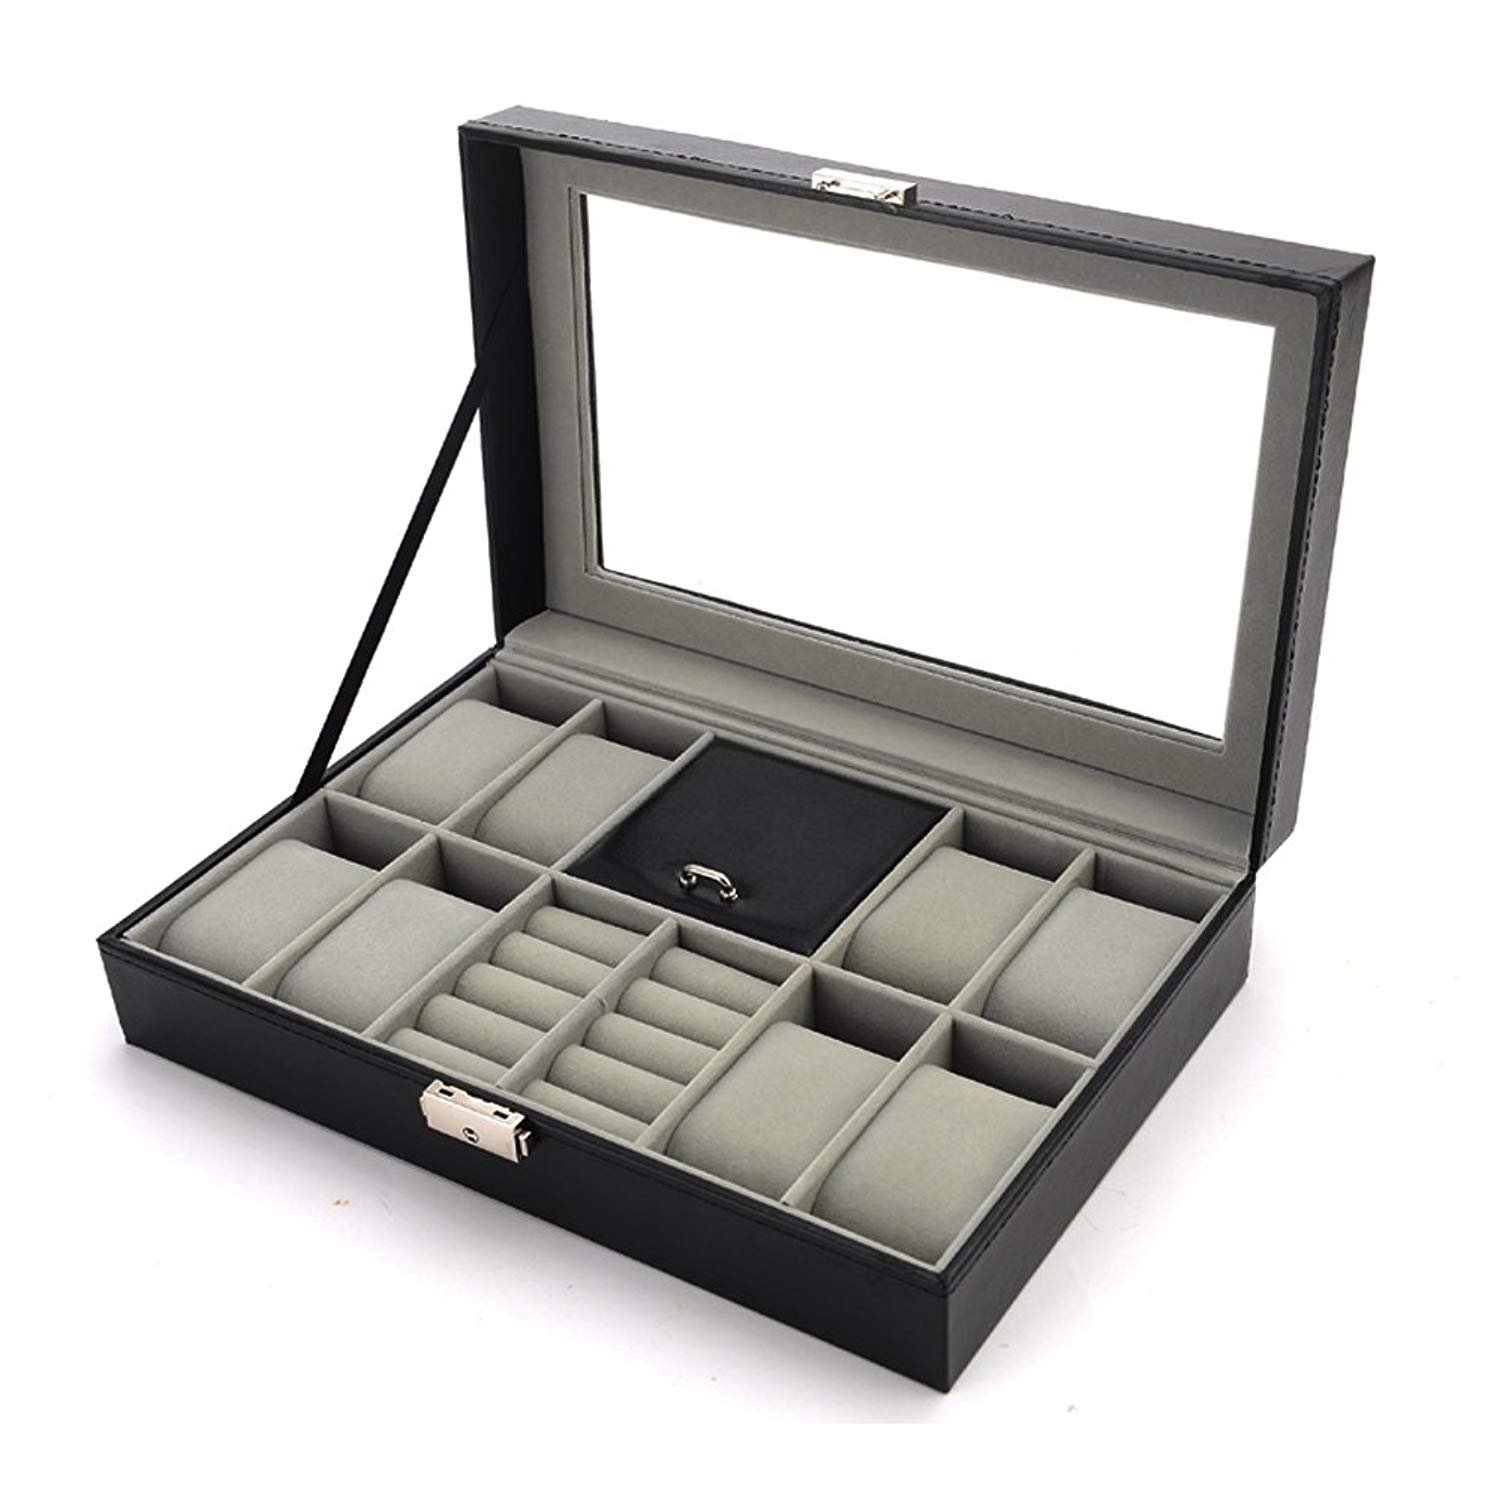 Boby Cufflinks and Watch Box Organizer Watch Case for Men PU Leather for Display Storage Holder for 8 Watches Cufflinks and Rings with Glass Top Black